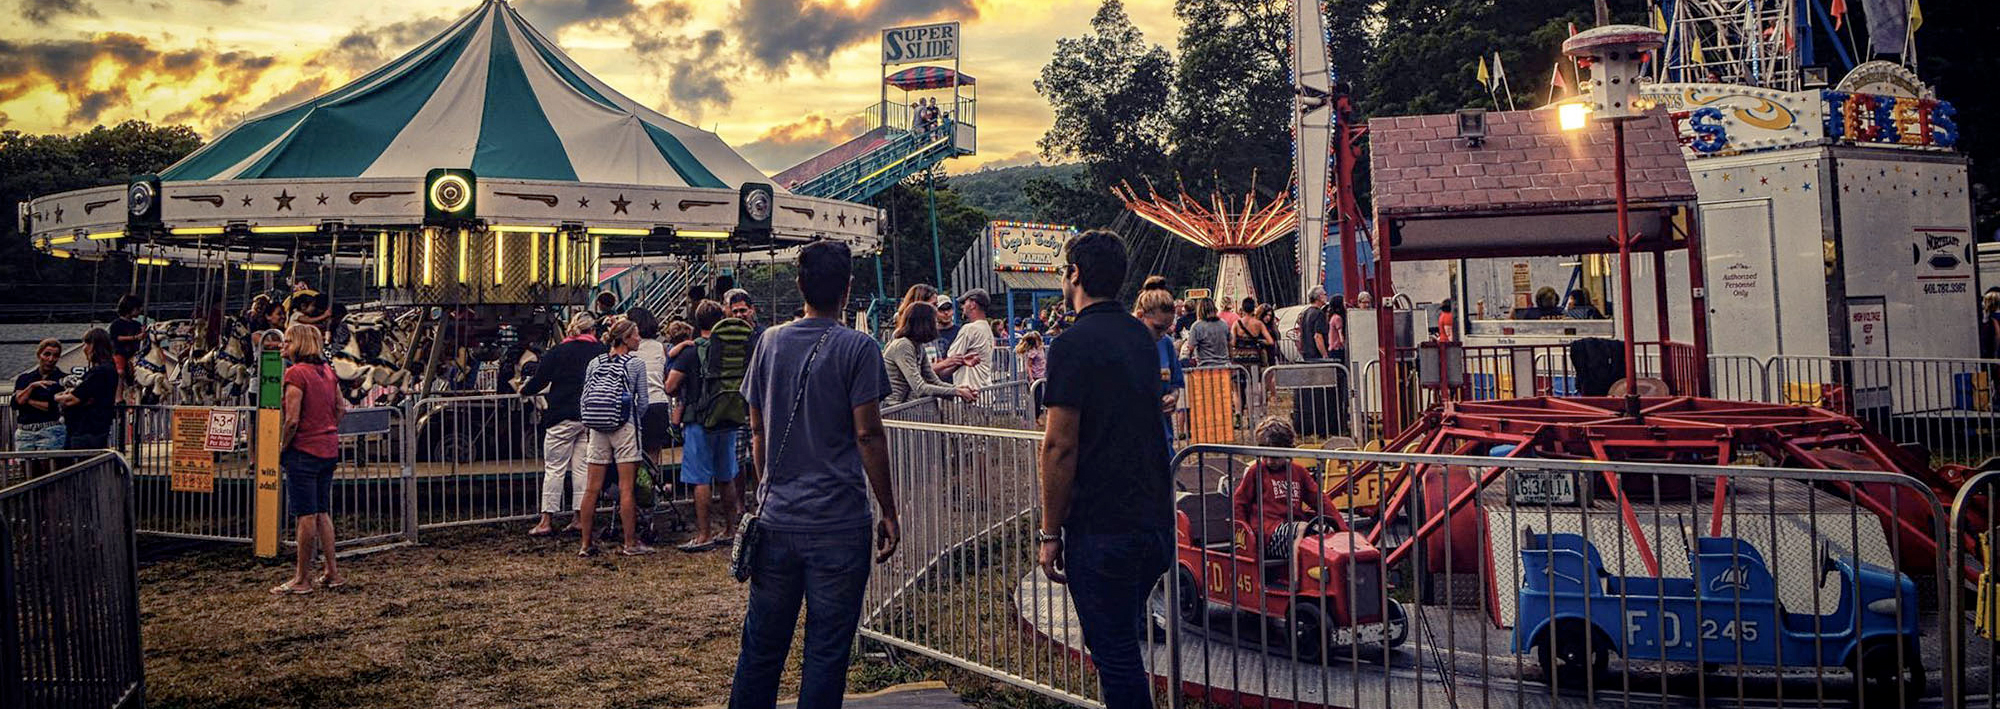 2018 Hamburg Fair